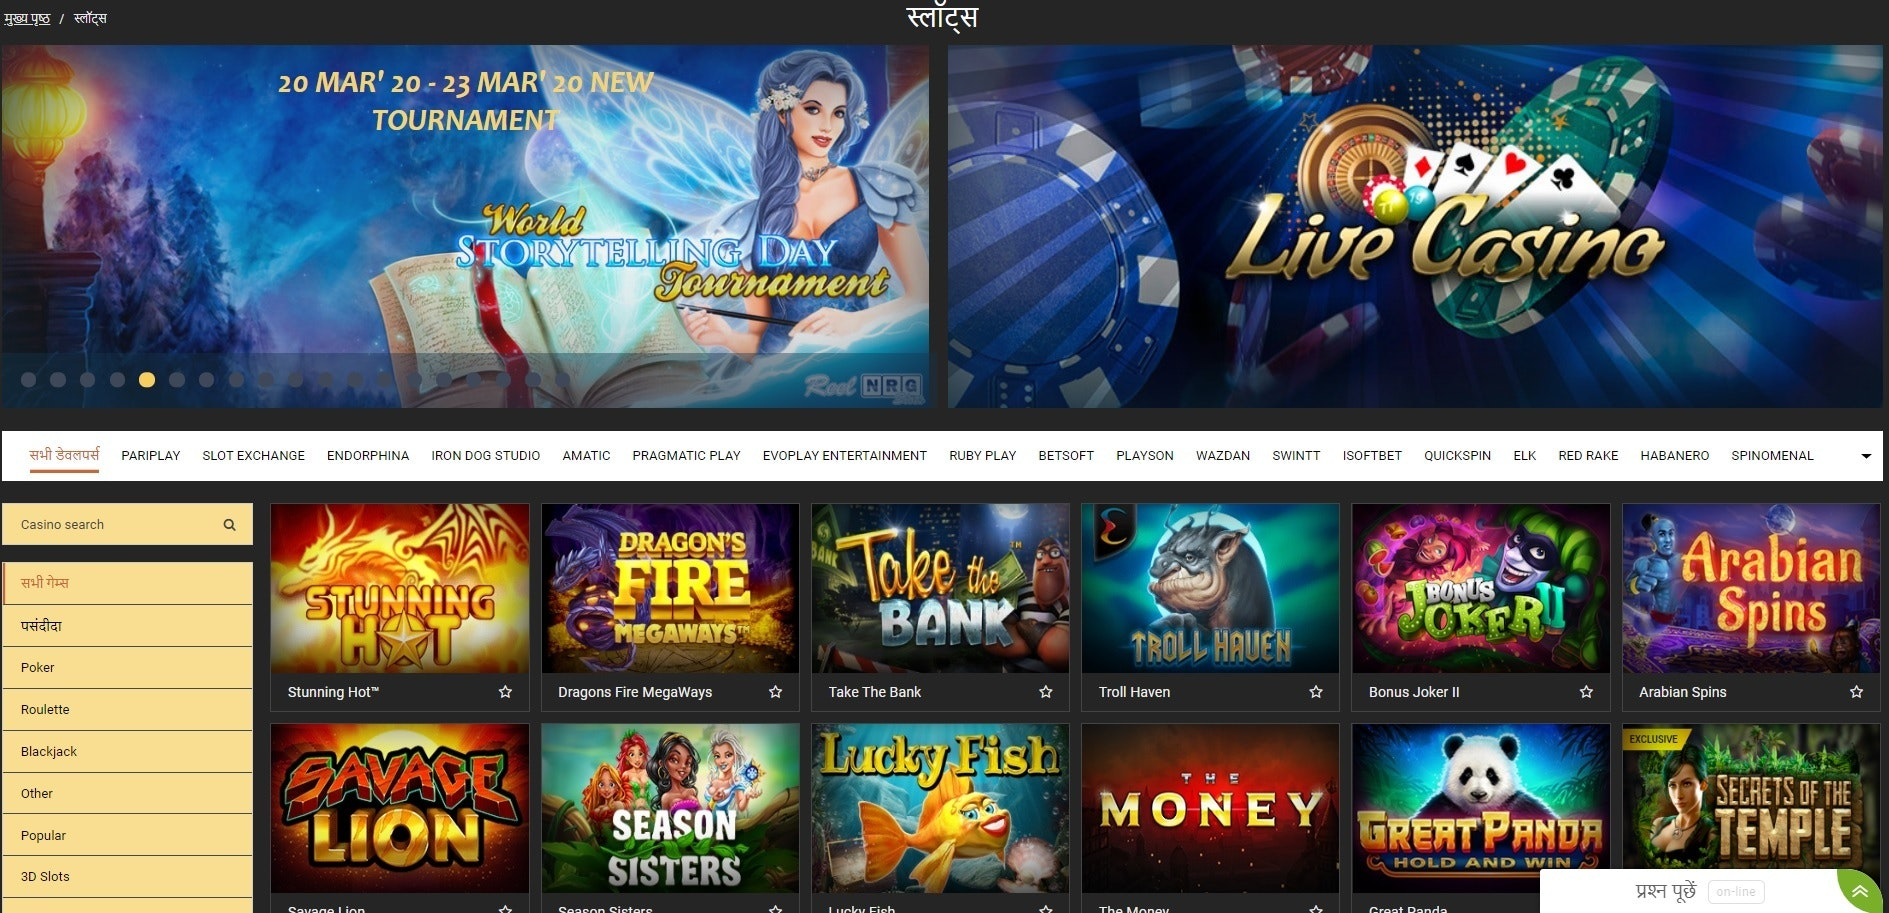 Finest NJ Online Casino Sites At NJ Gambling Sites